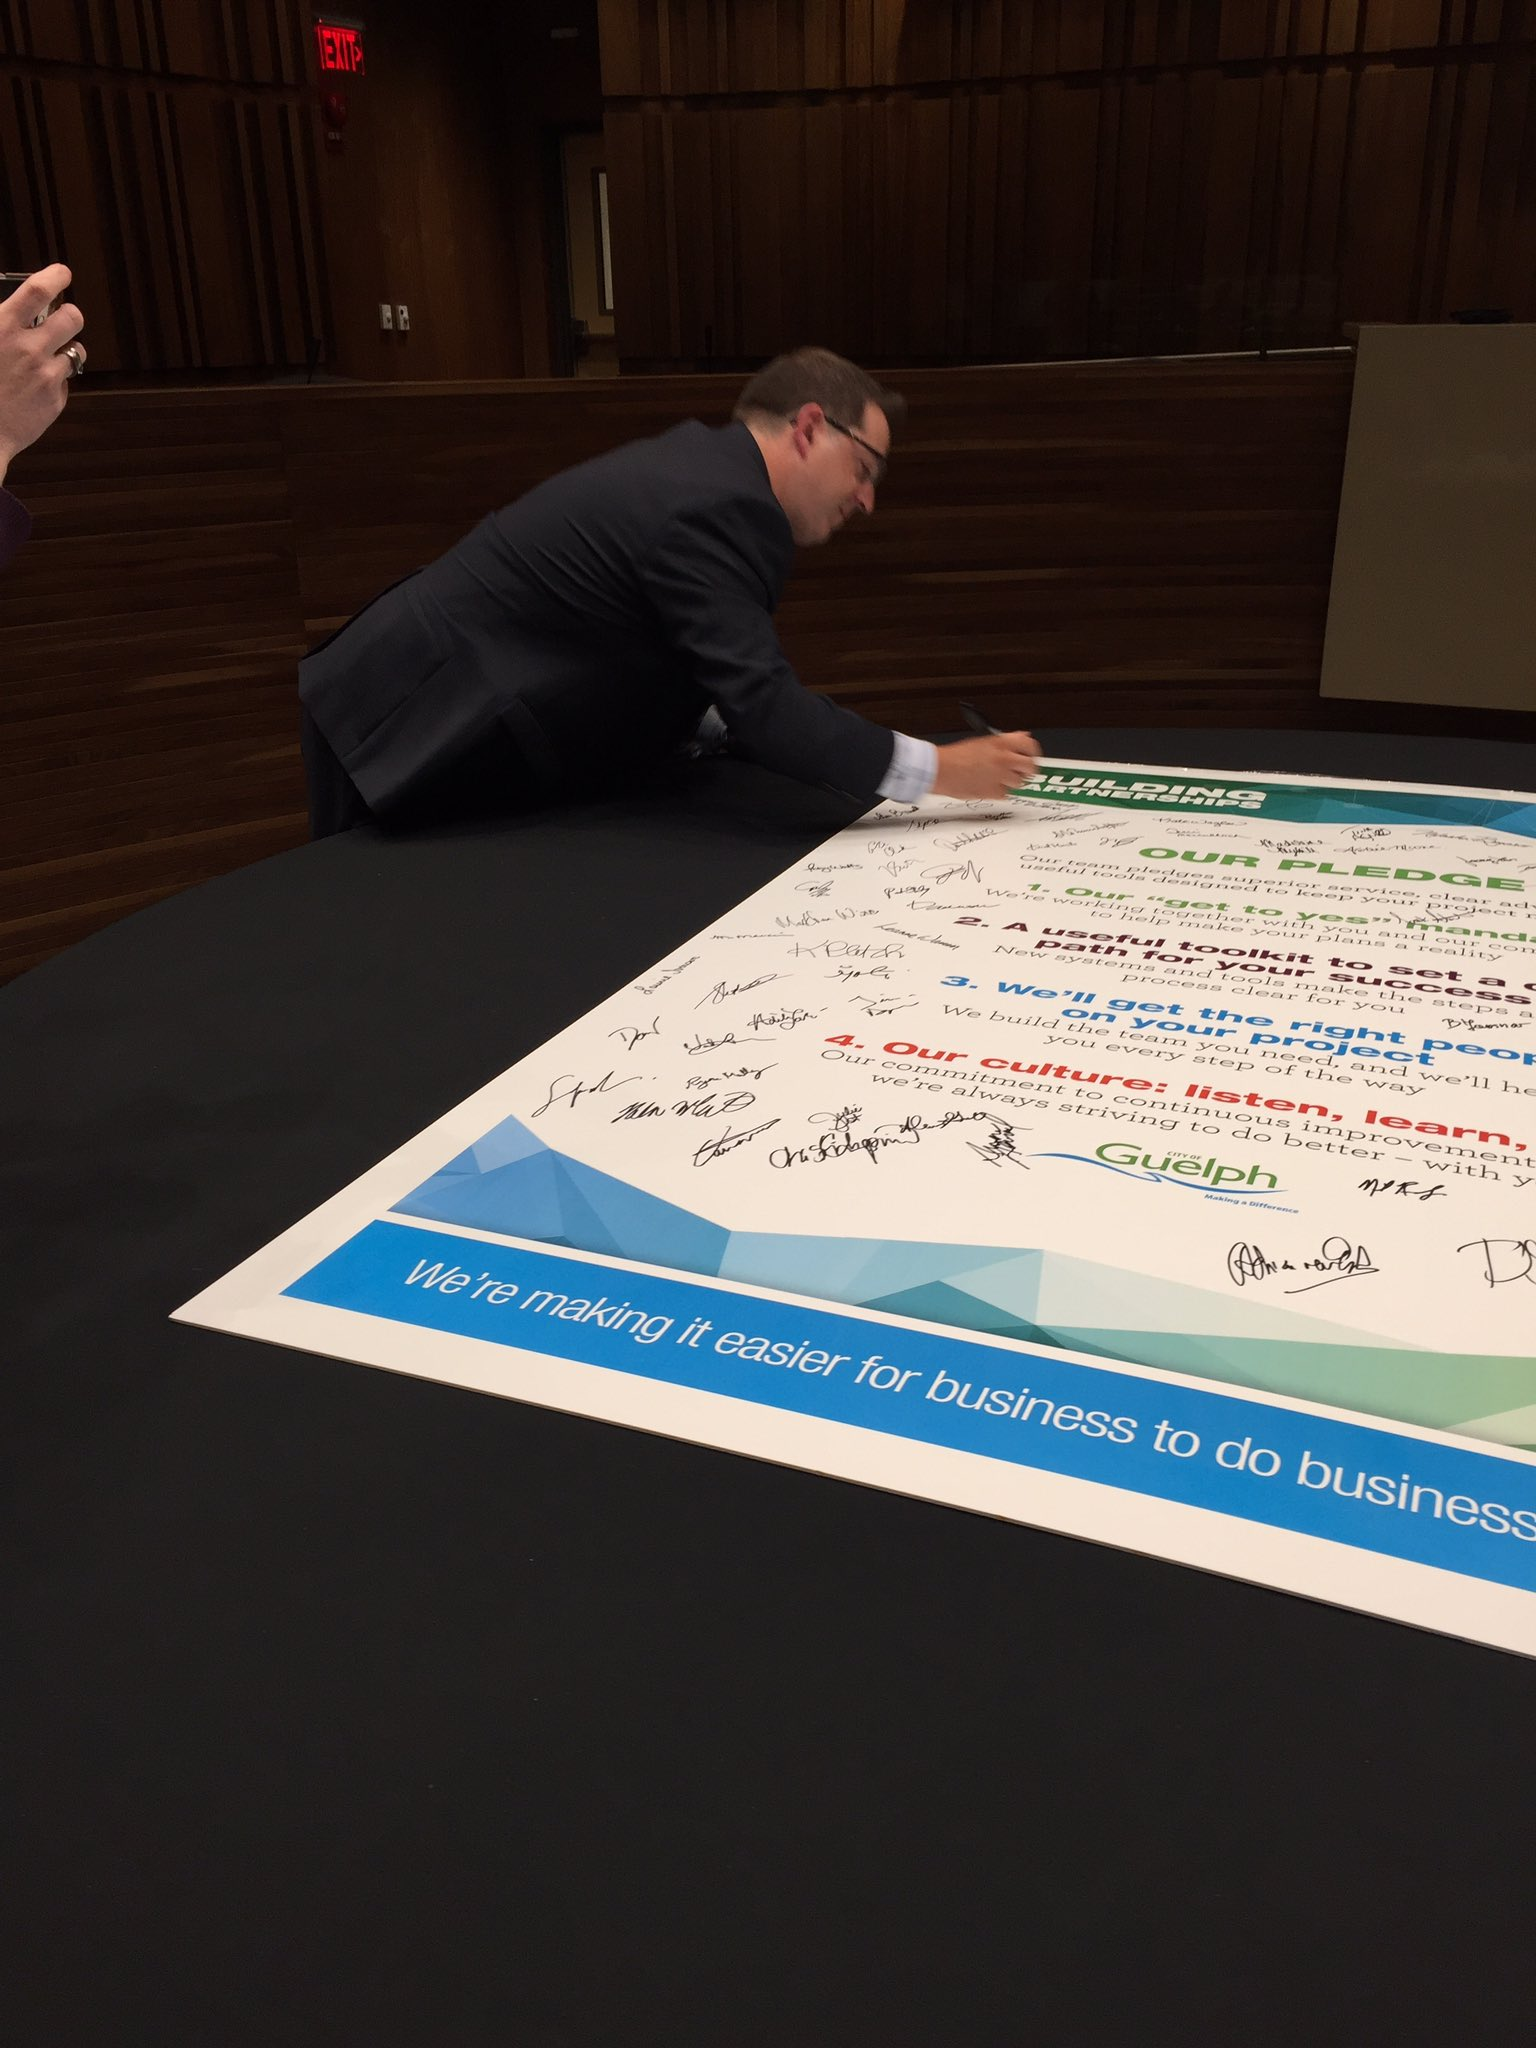 .@CamGuthrie is the first to sign the pledge rededicating the @cityofguelph to better business relations. https://t.co/jxa3qDhTmQ